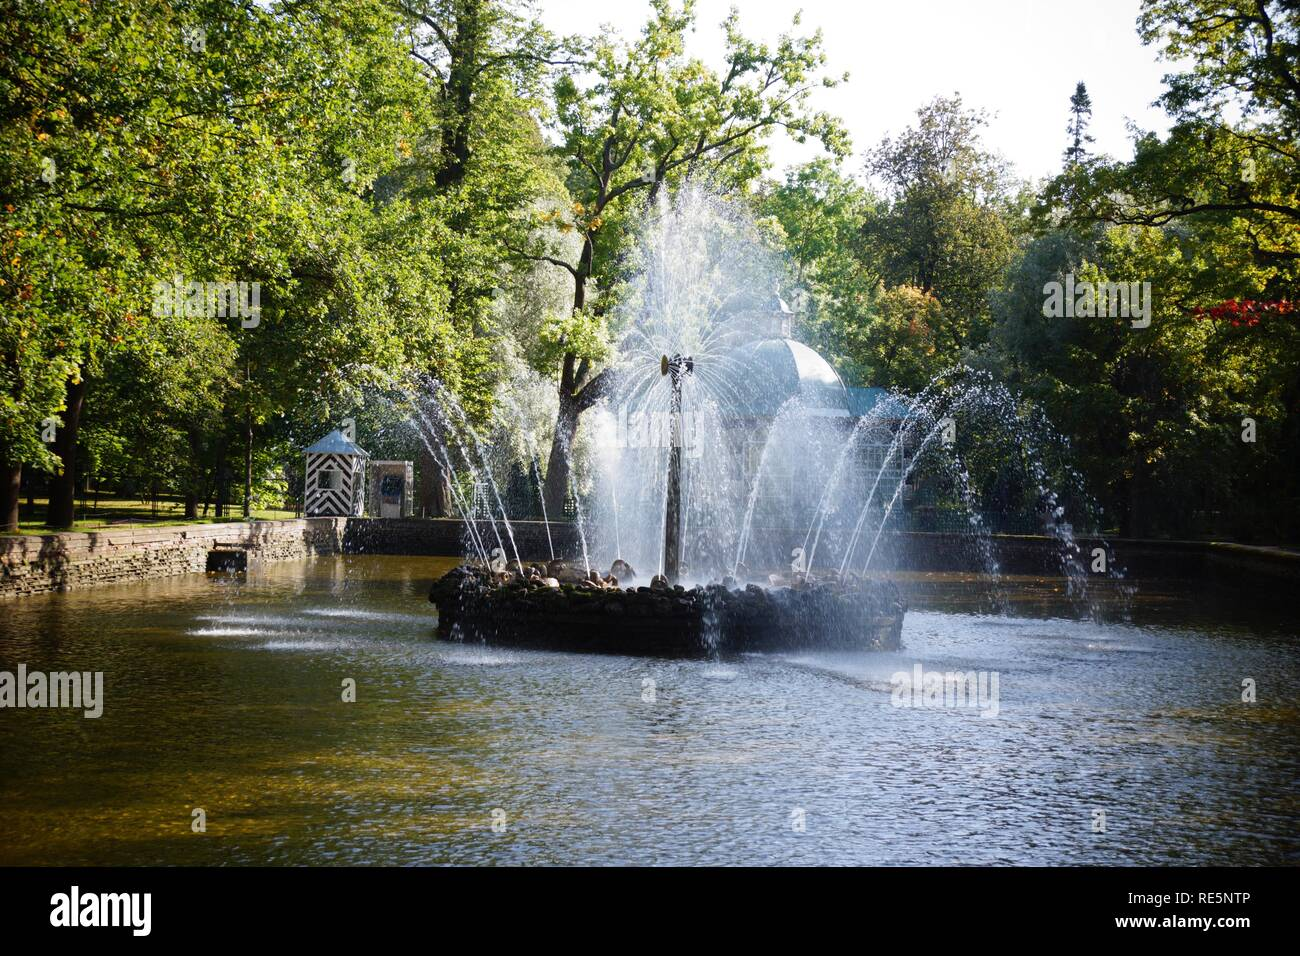 Fountains at Peterhof Palace St Petersburg - Stock Image